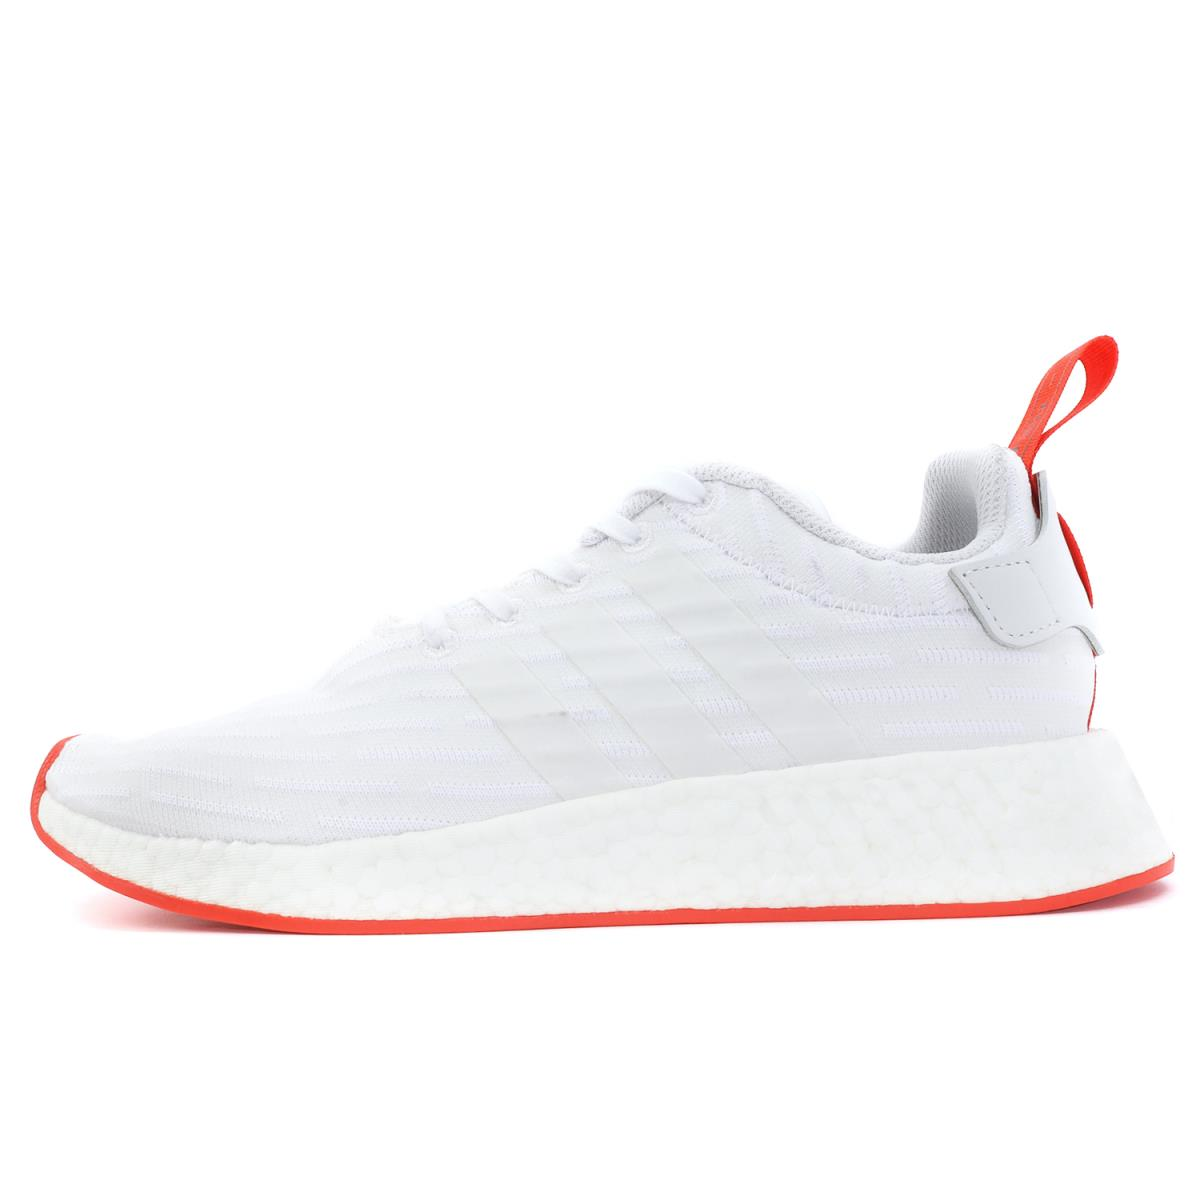 uk availability 53554 1e02f adidas (Adidas) 17S/S NMD_R2 (BA7253) white X core red US8.5(26.5cm)